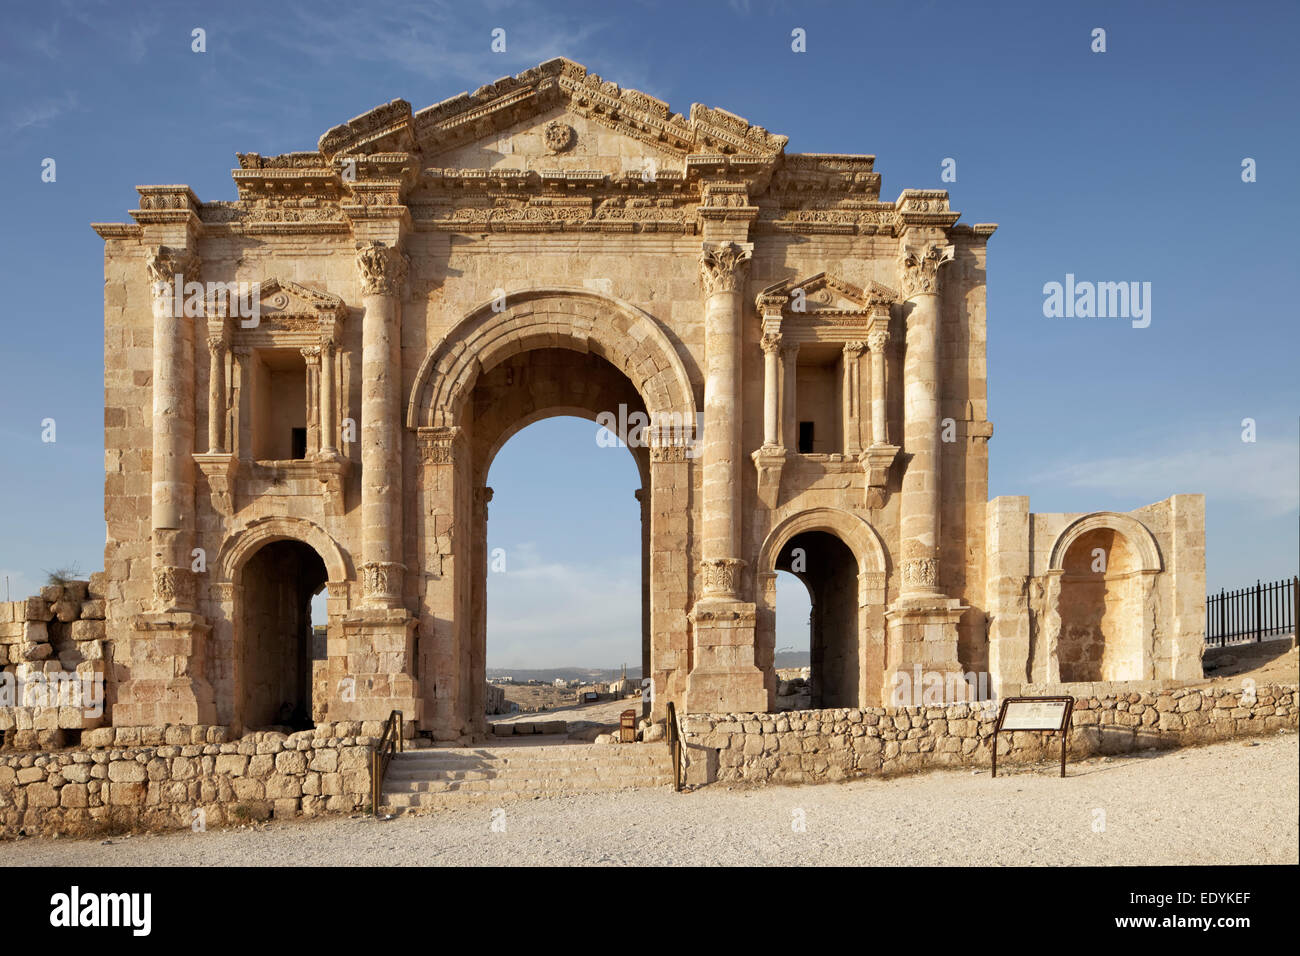 Triumphal arch in honour of Emperor Hadrian, portal, built 129-130 AD, an ancient Roman city of the Decapolis, Jerash - Stock Image